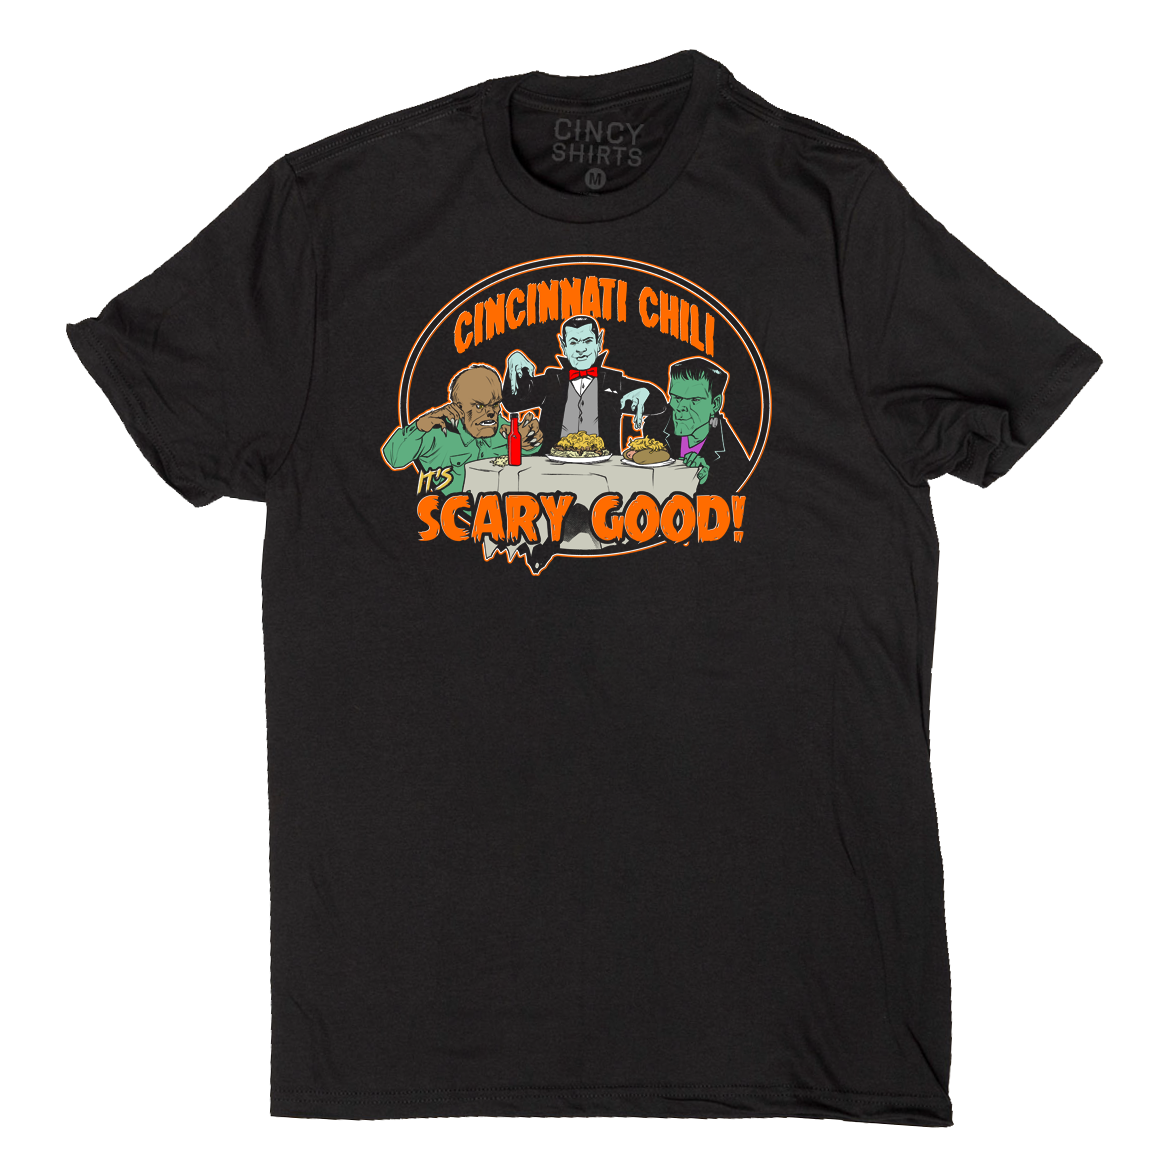 Cincinnati Chili Scary Good - Cincy Shirts